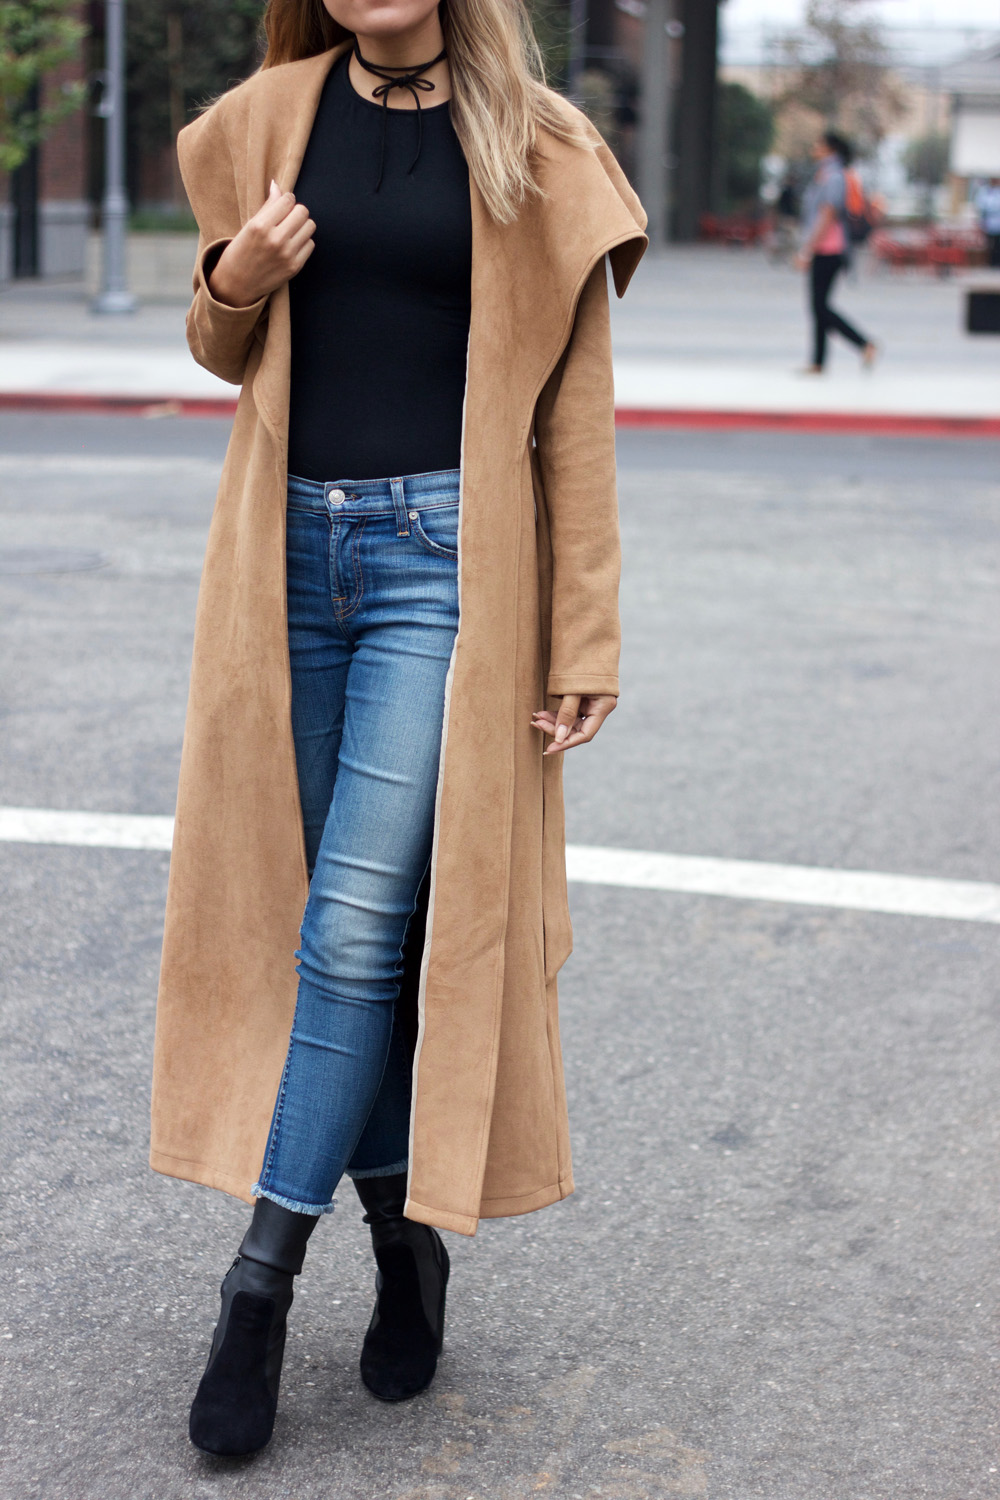 state of being, camel coat, melrodstyle, ootd, fashion, street style, arts district, aldo boots, denim, top knot, la blogger, hispanic blogger, latina blogger, mexican blogger,